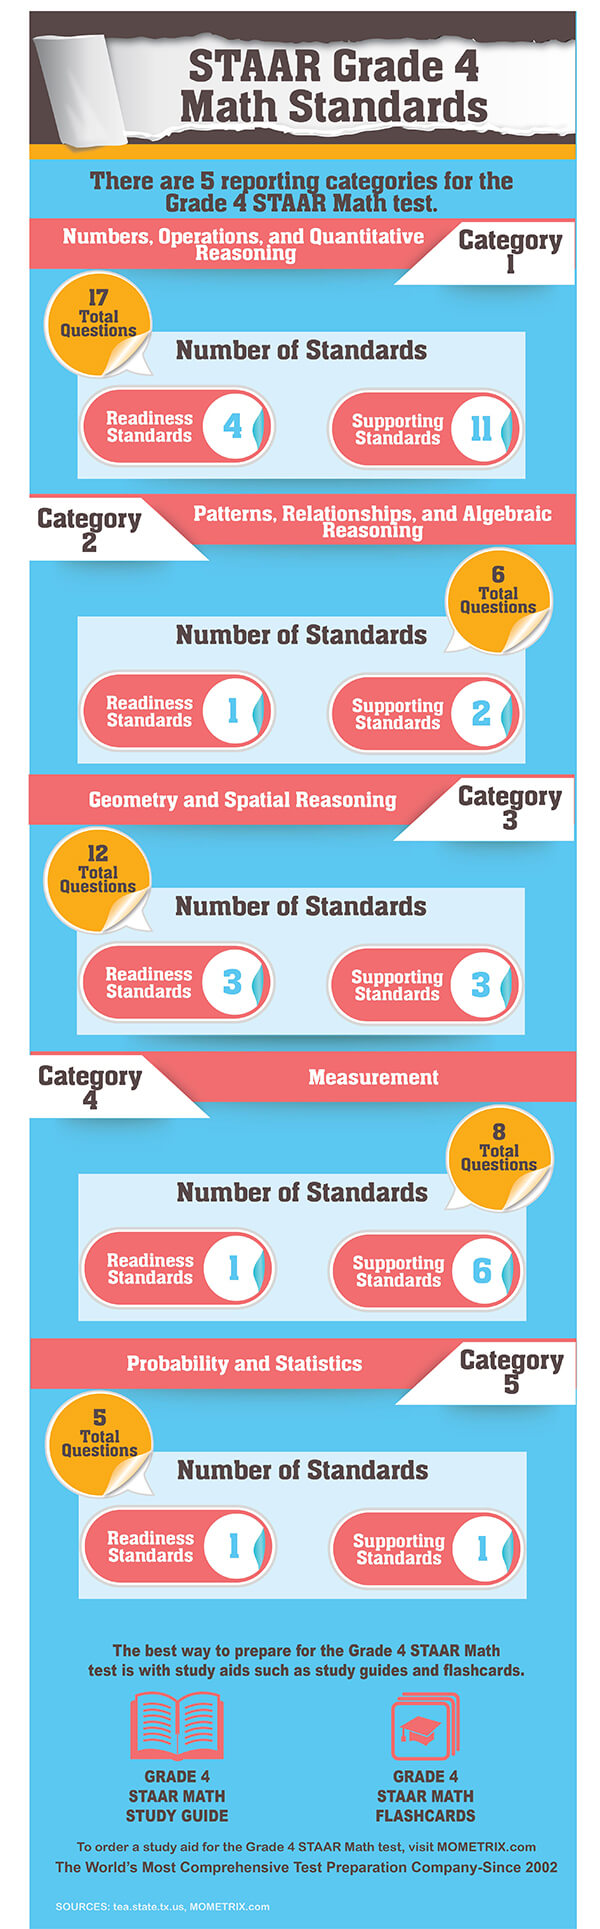 STAAR Grade 4 Math Standards. There are 5 reporting categories for the Grade 4 STAAR Math test; Numbers, Operation, and Quantitative Reasoning-17 questions; Patterns, Relationships, and Algebraic Reasoning-6 questions; Geometric and Spatial Reasoning-12 questions; Measurement-8 questions; Probability and Statistics- 5 questions.